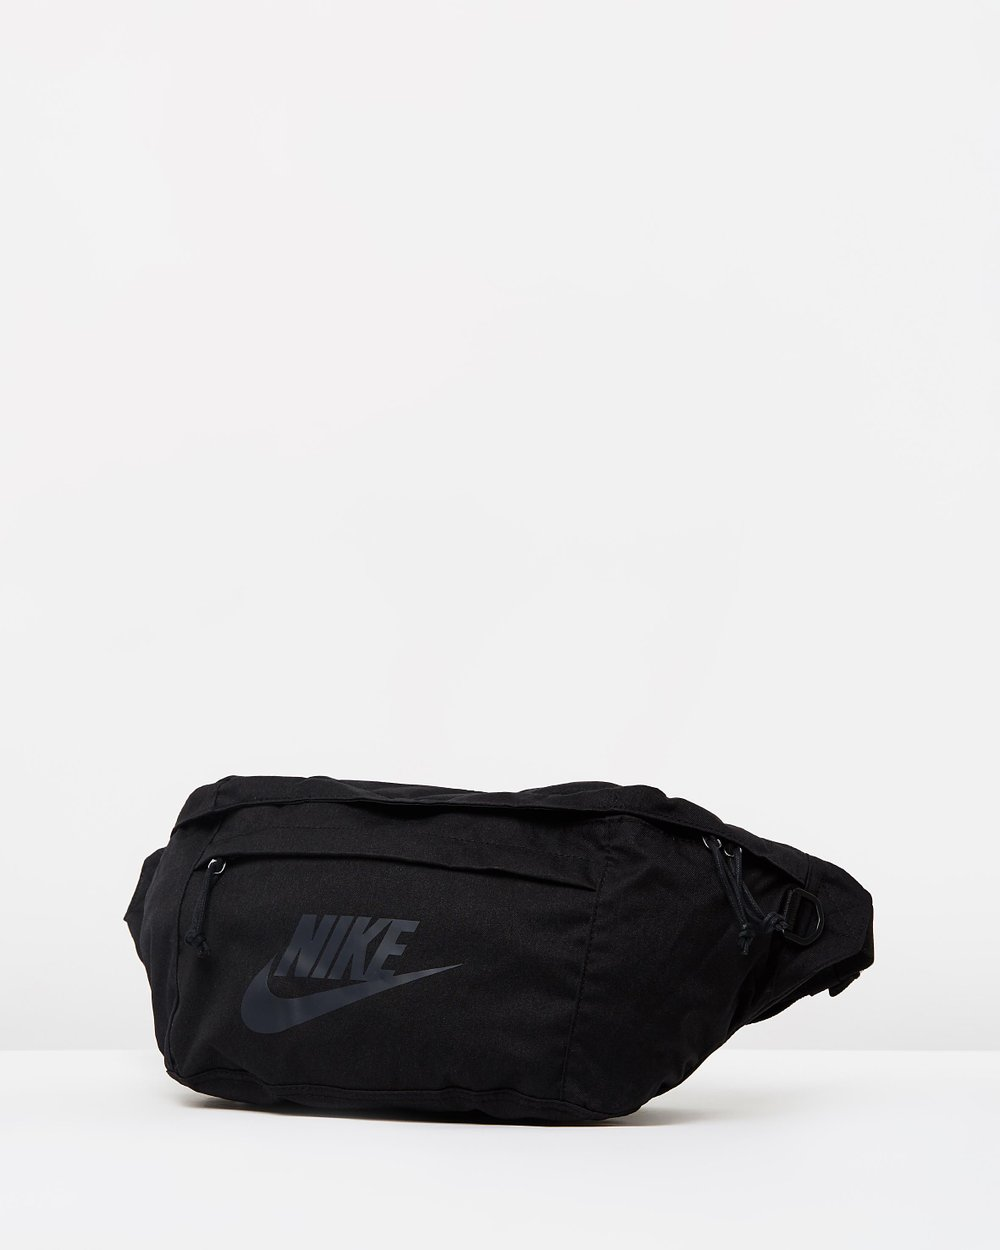 063e2b38b816 Tech Hip Pack by Nike Online